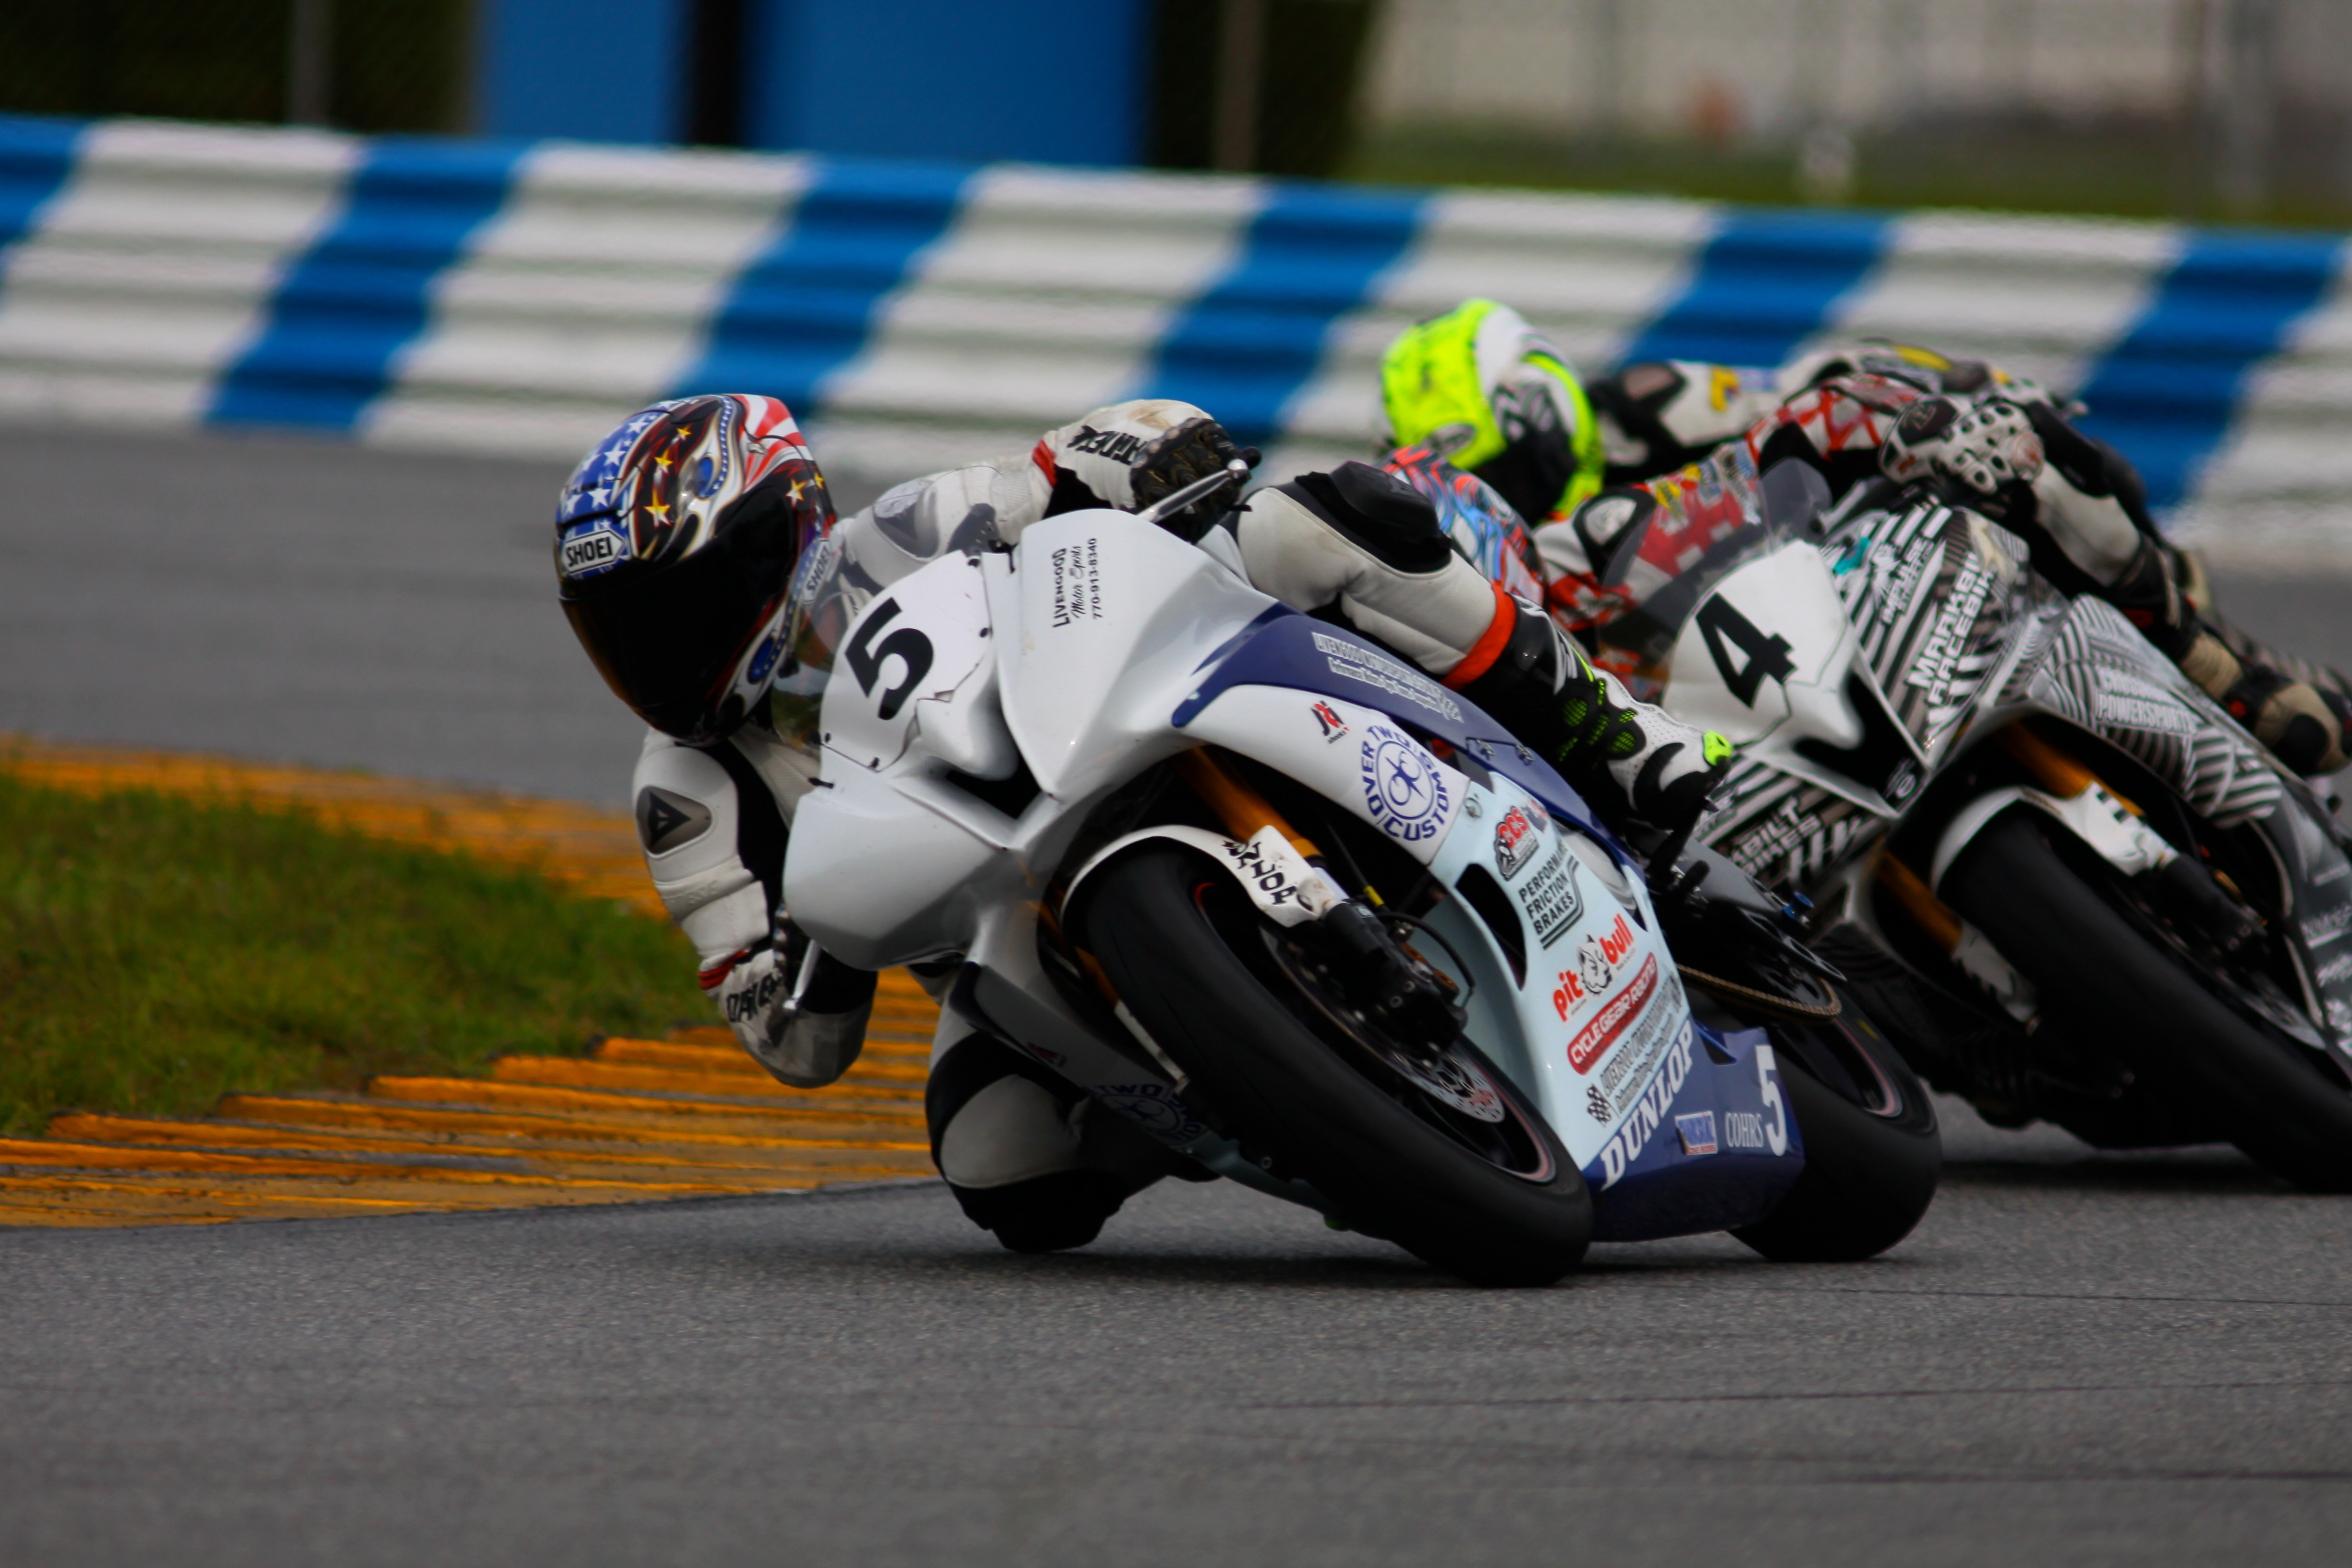 Livengood Motor Sports&#8217; Jim Cohrs to compete in AMA Pro SuperSport East Championship